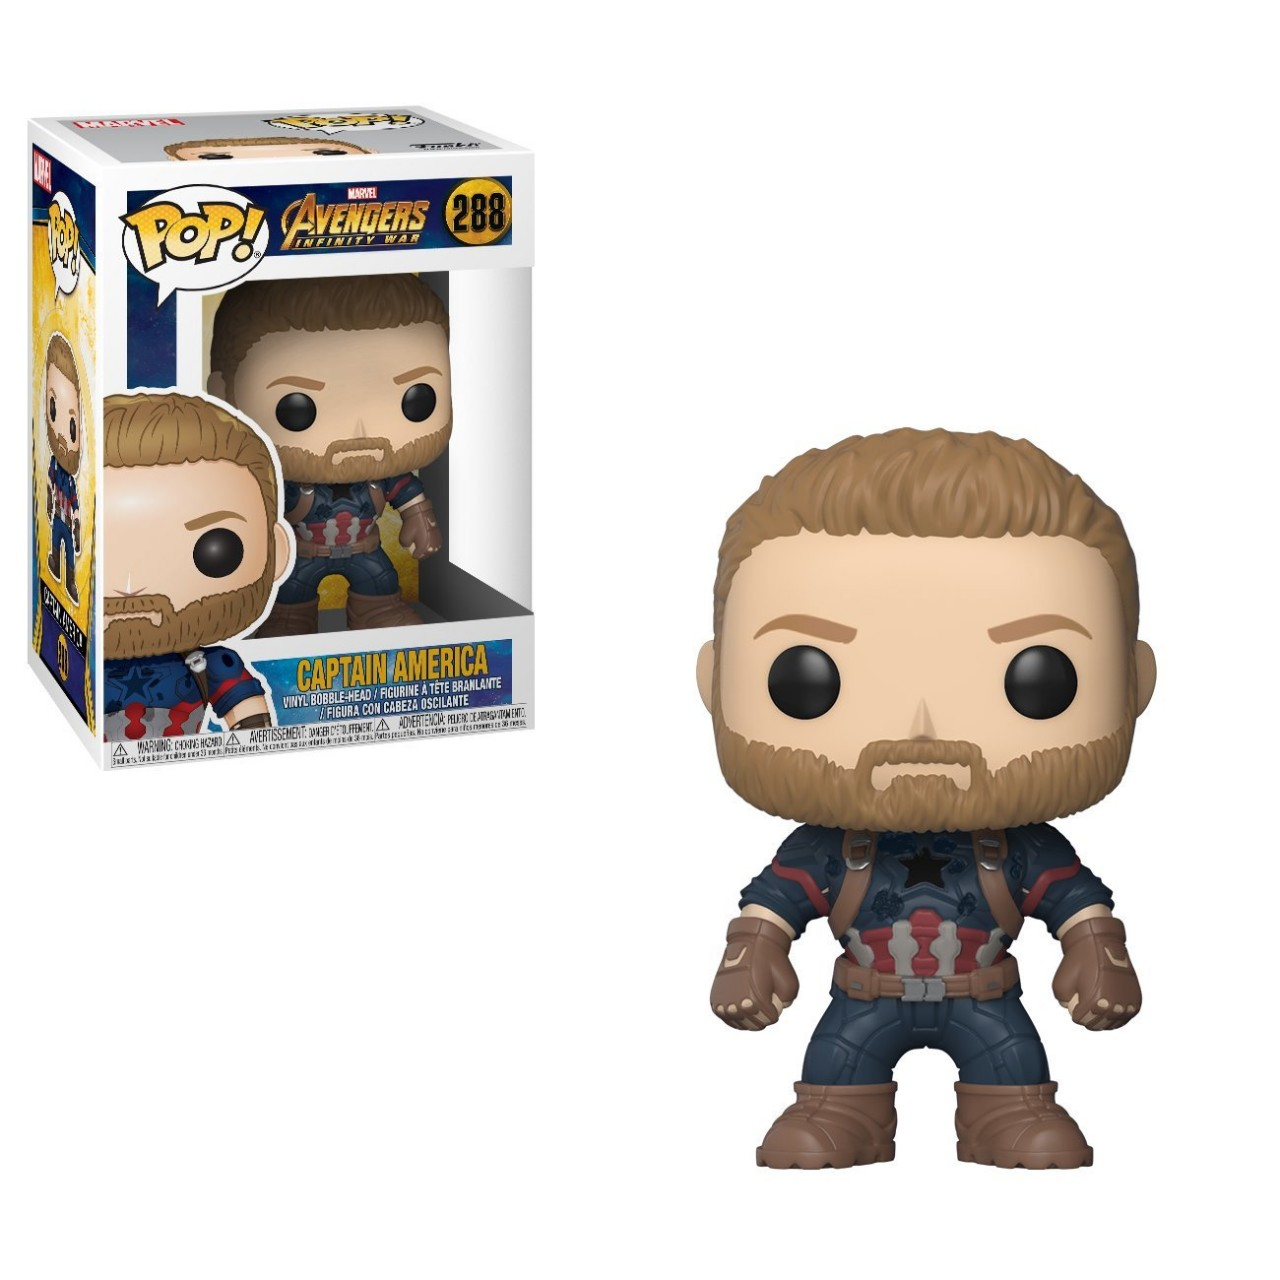 Фигурка Funko Pop Мстители Марвел: Капитан Америка (26466)  #288 Marvel Captain America